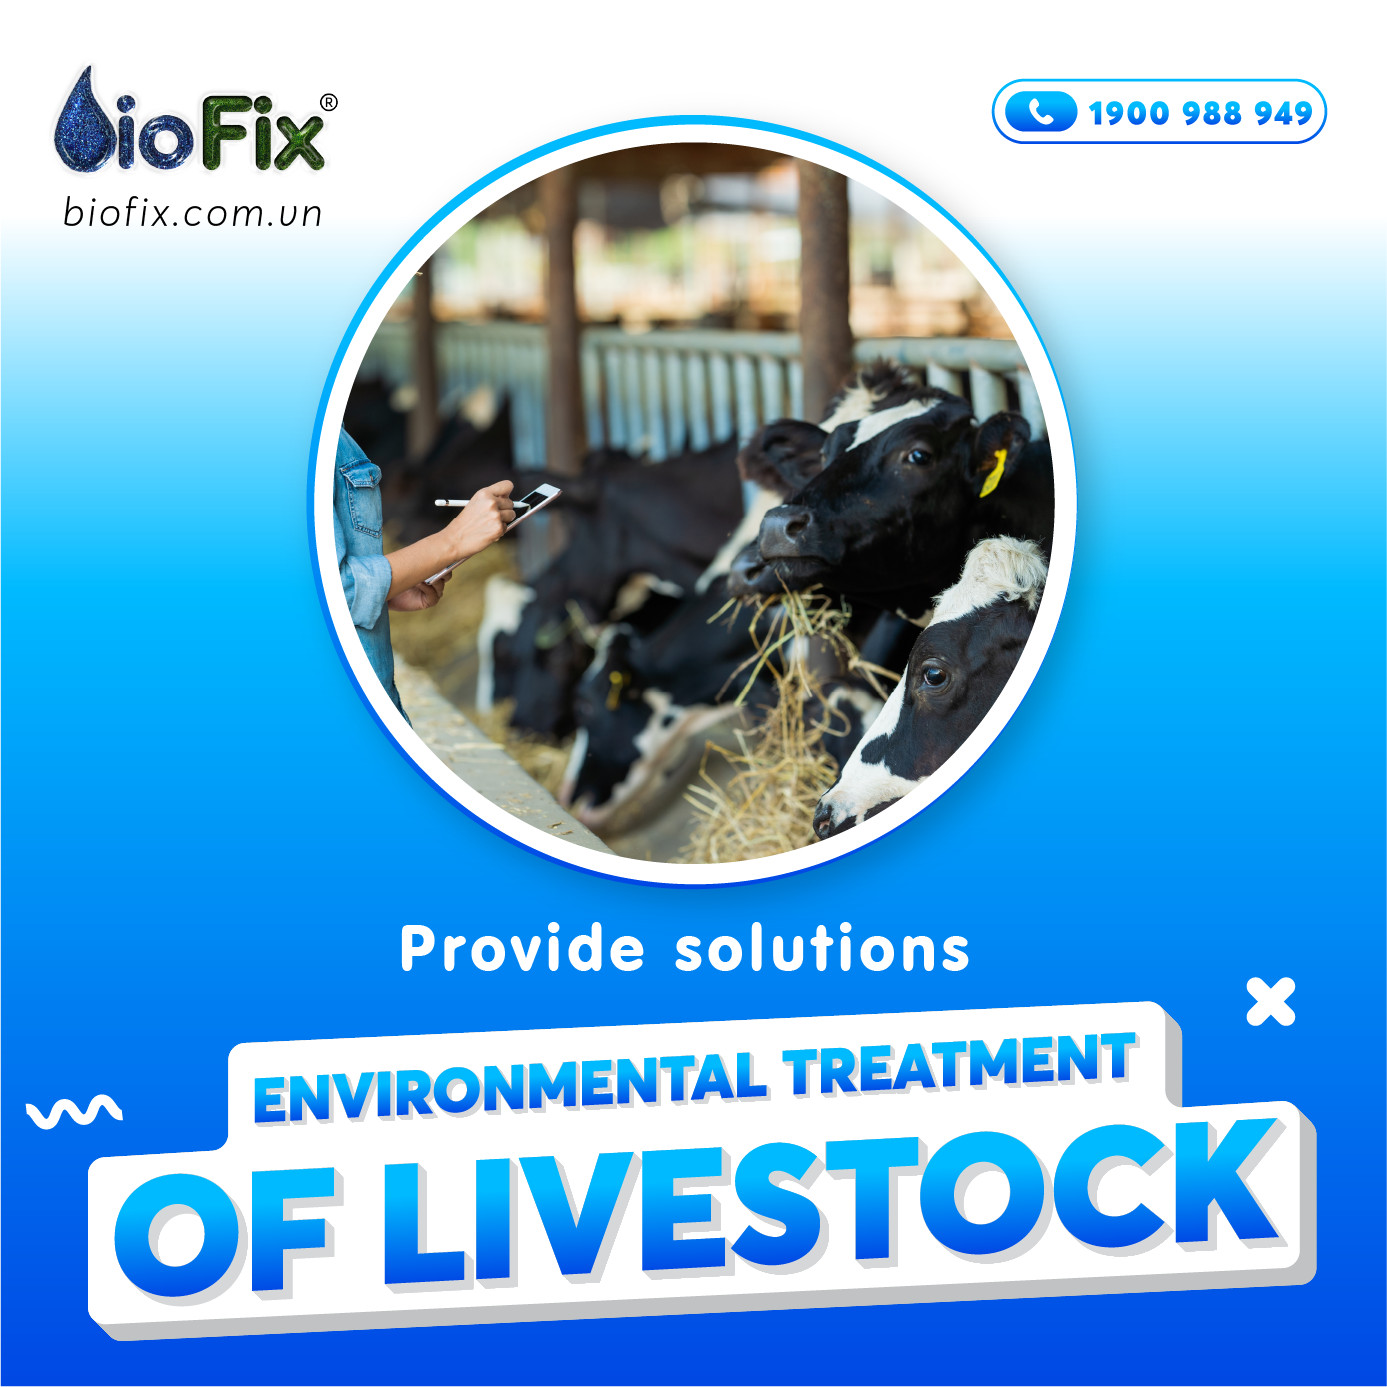 All environmental solutions for the livestock industry